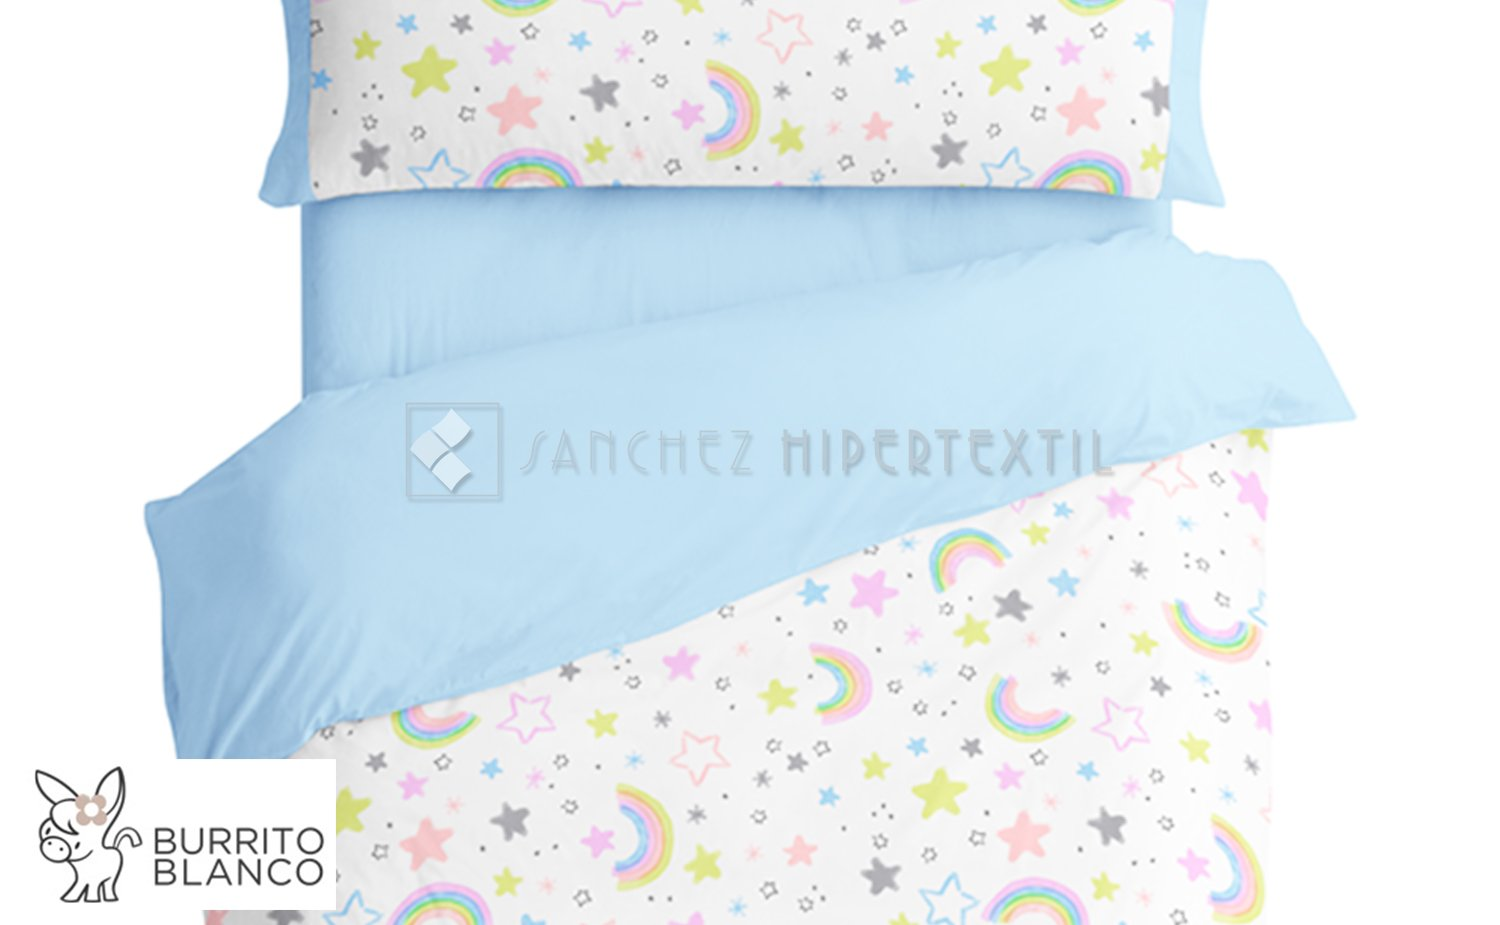 Duvet cover set 3 pieces + bag - 170 - RAINBOW by BURRITO BLANCO.